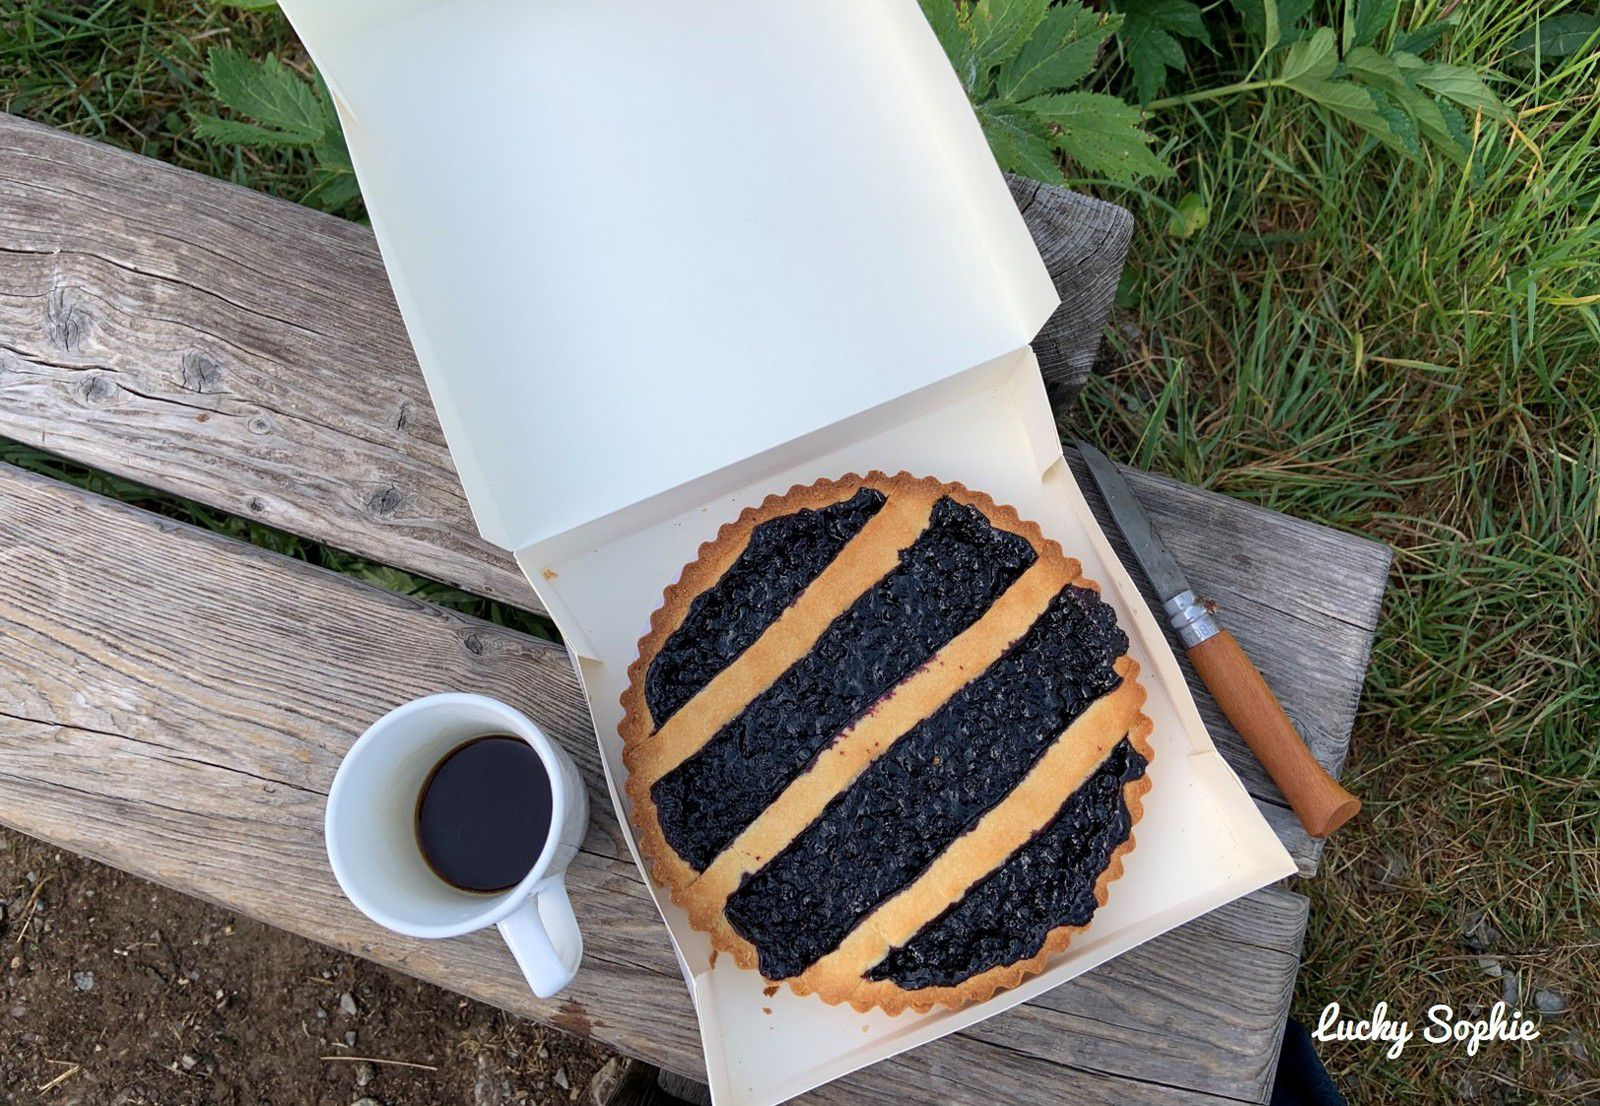 Tarte aux myrtilles et café au grand air, what else ?